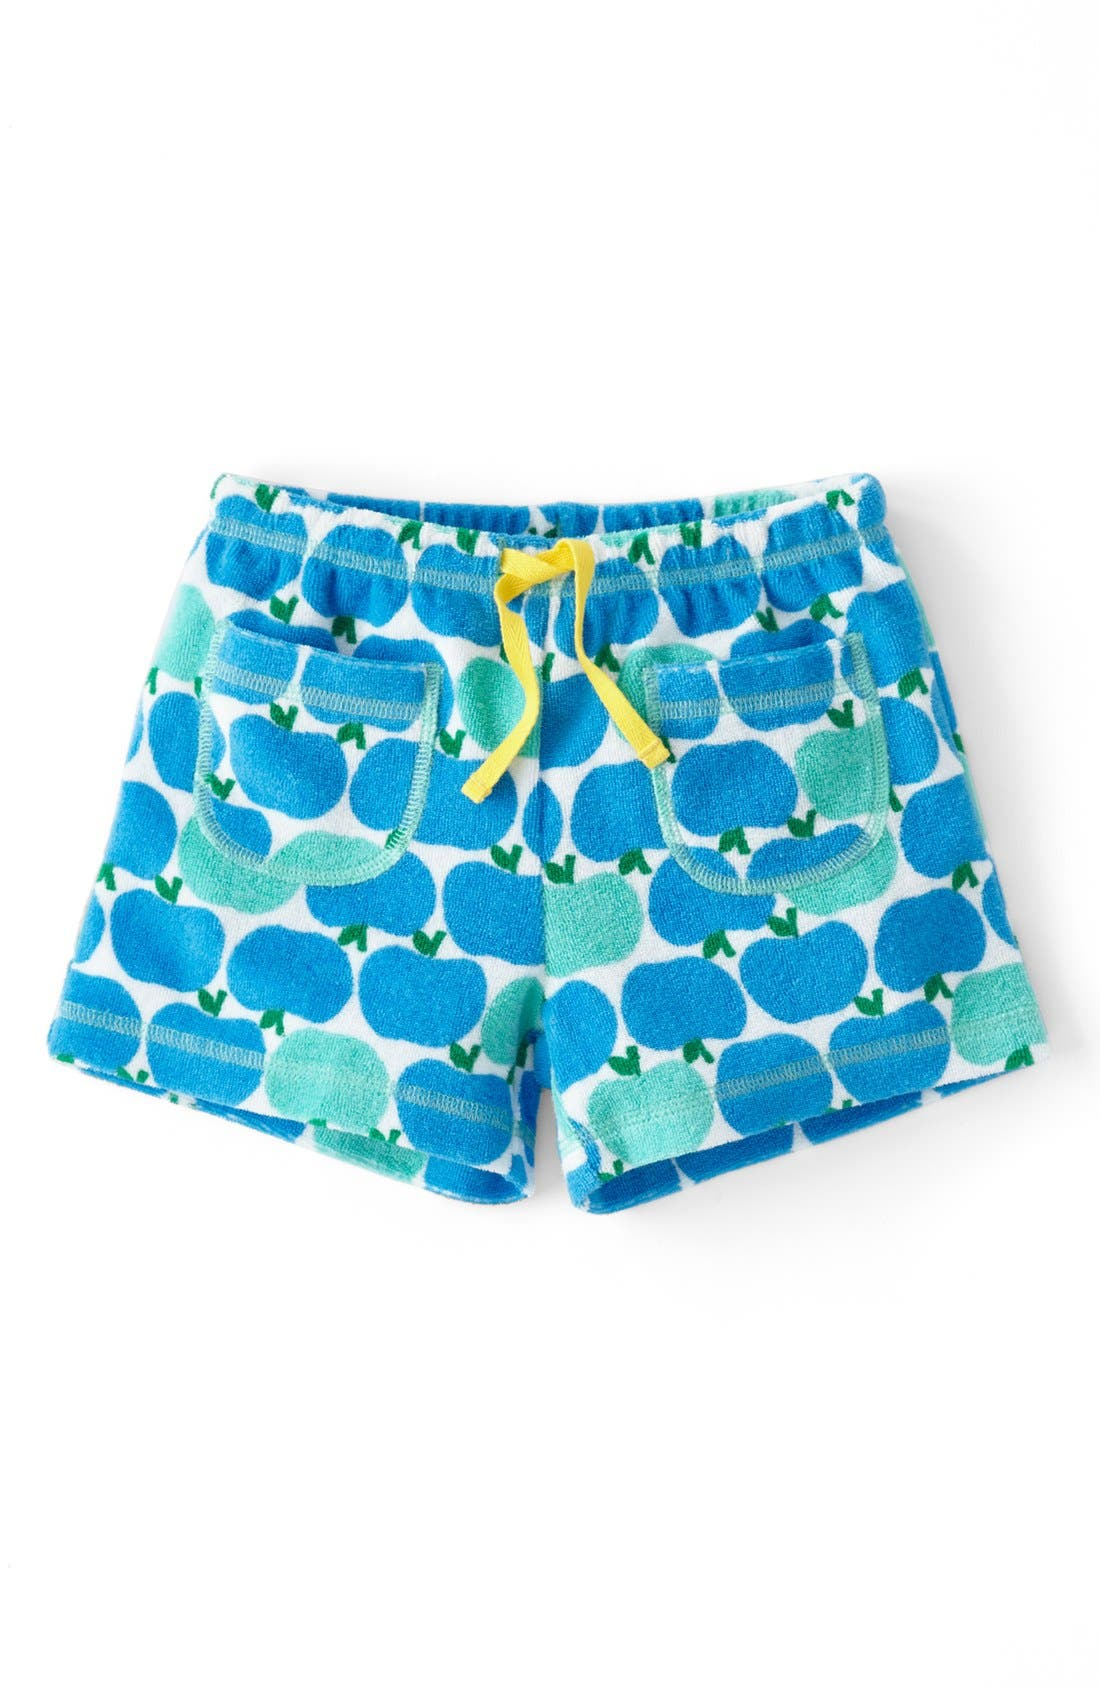 Main Image - Mini Boden 'Towelling' Shorts (Toddler Girls, Little Girls & Big Girls)(Online Only)